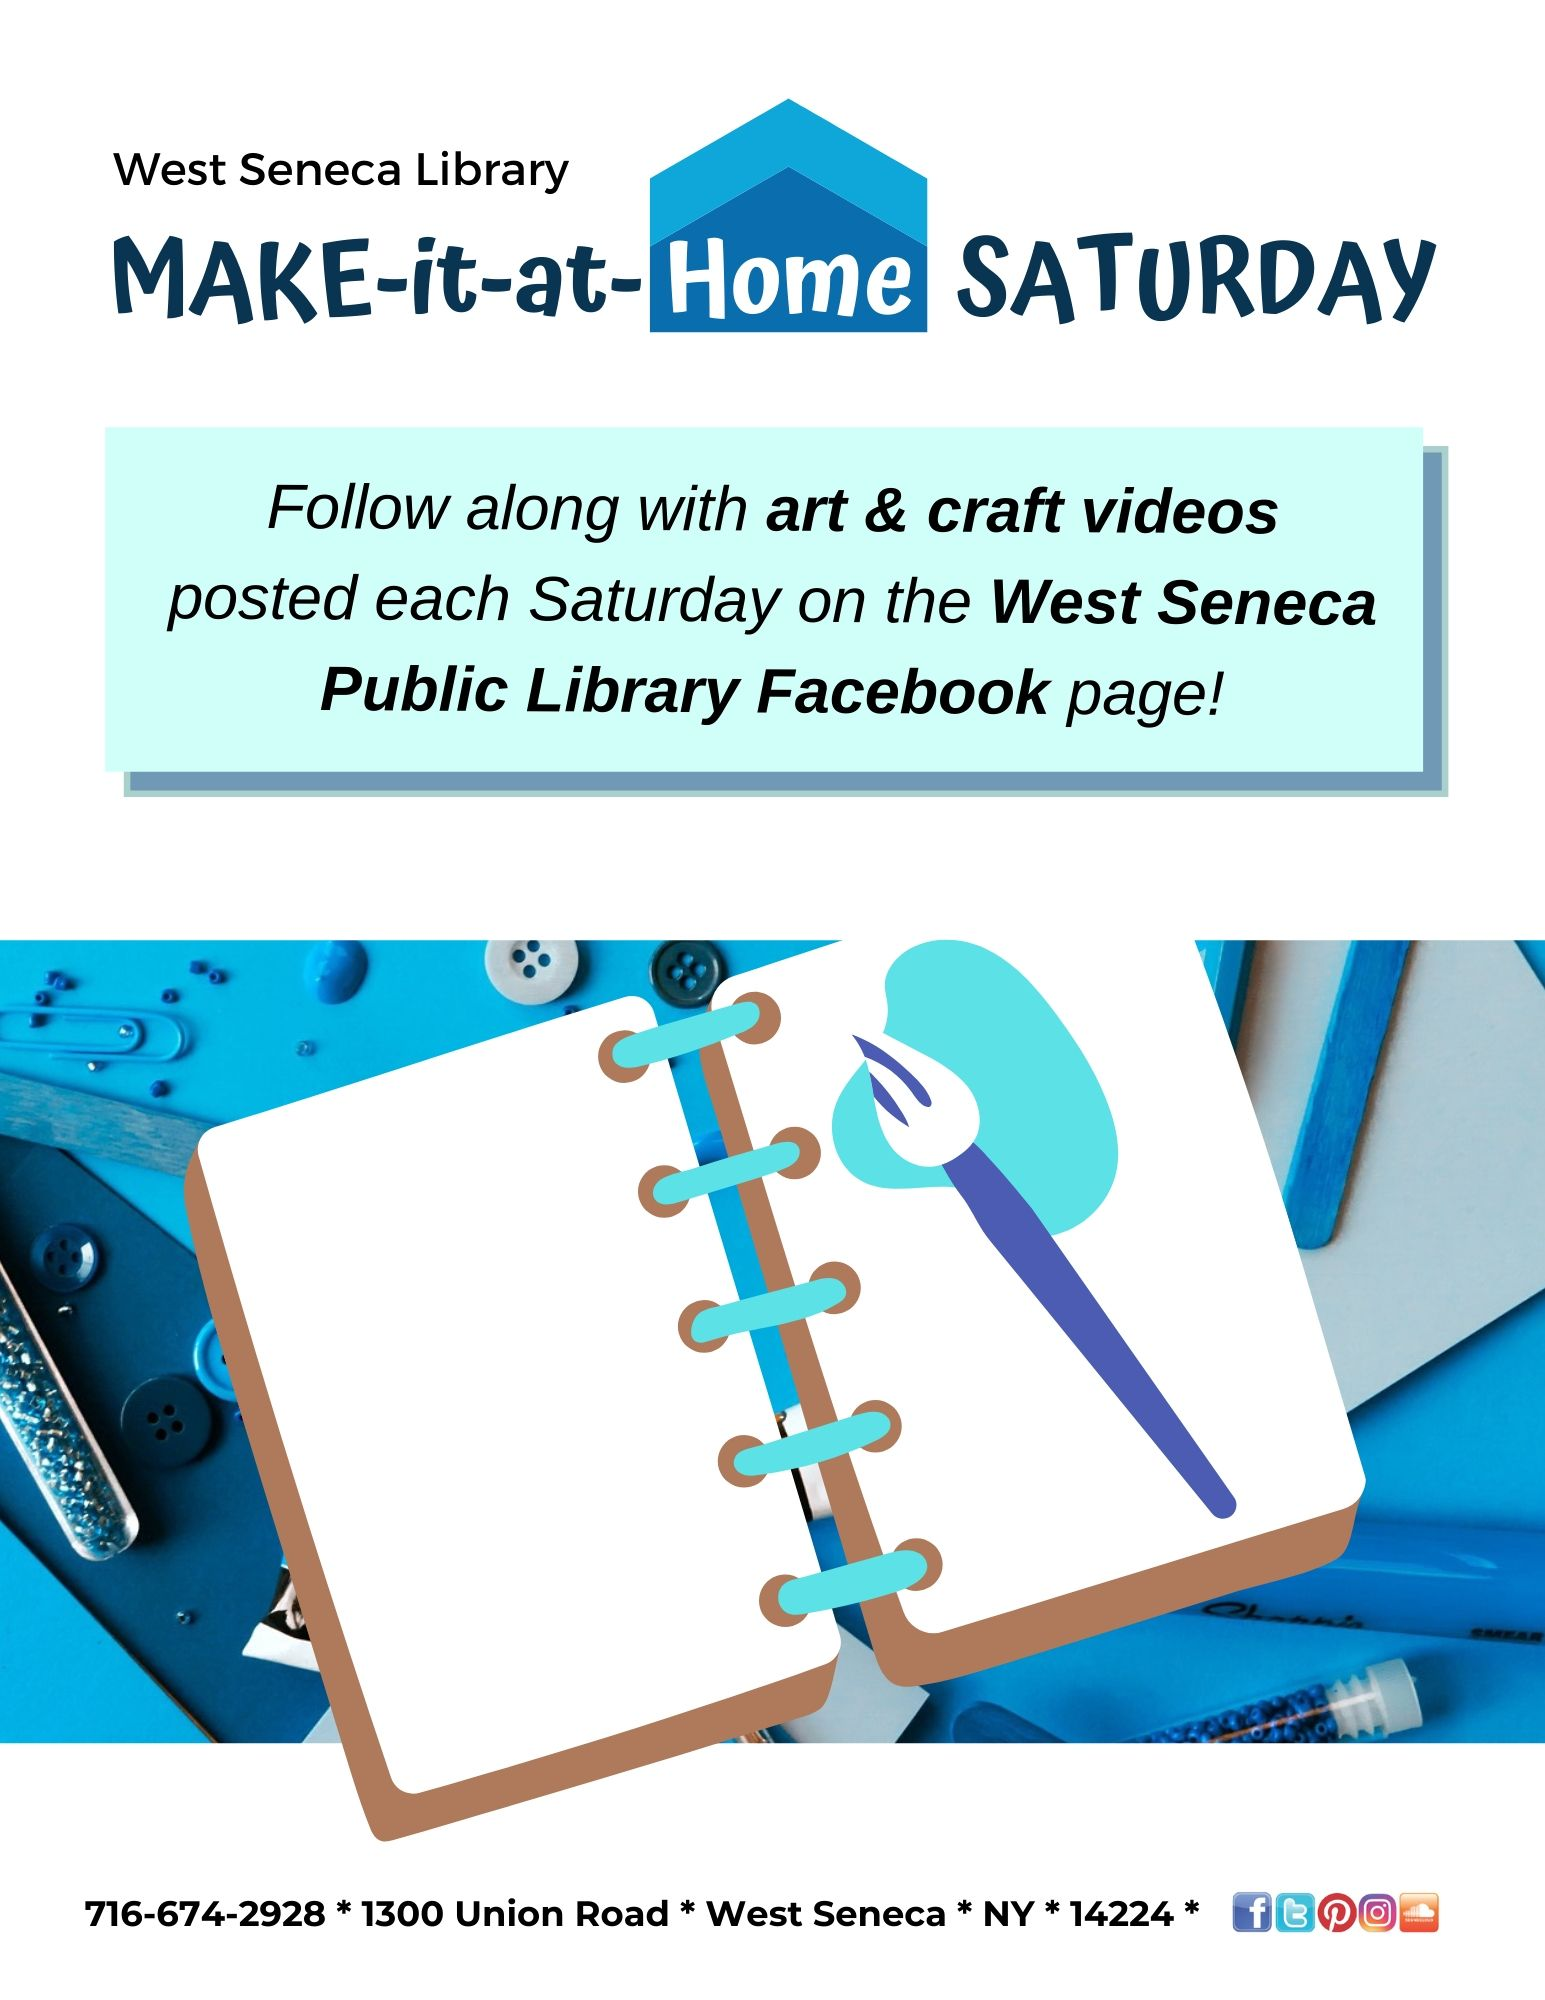 Virtual (online) Make-it-at-home Saturday craft program